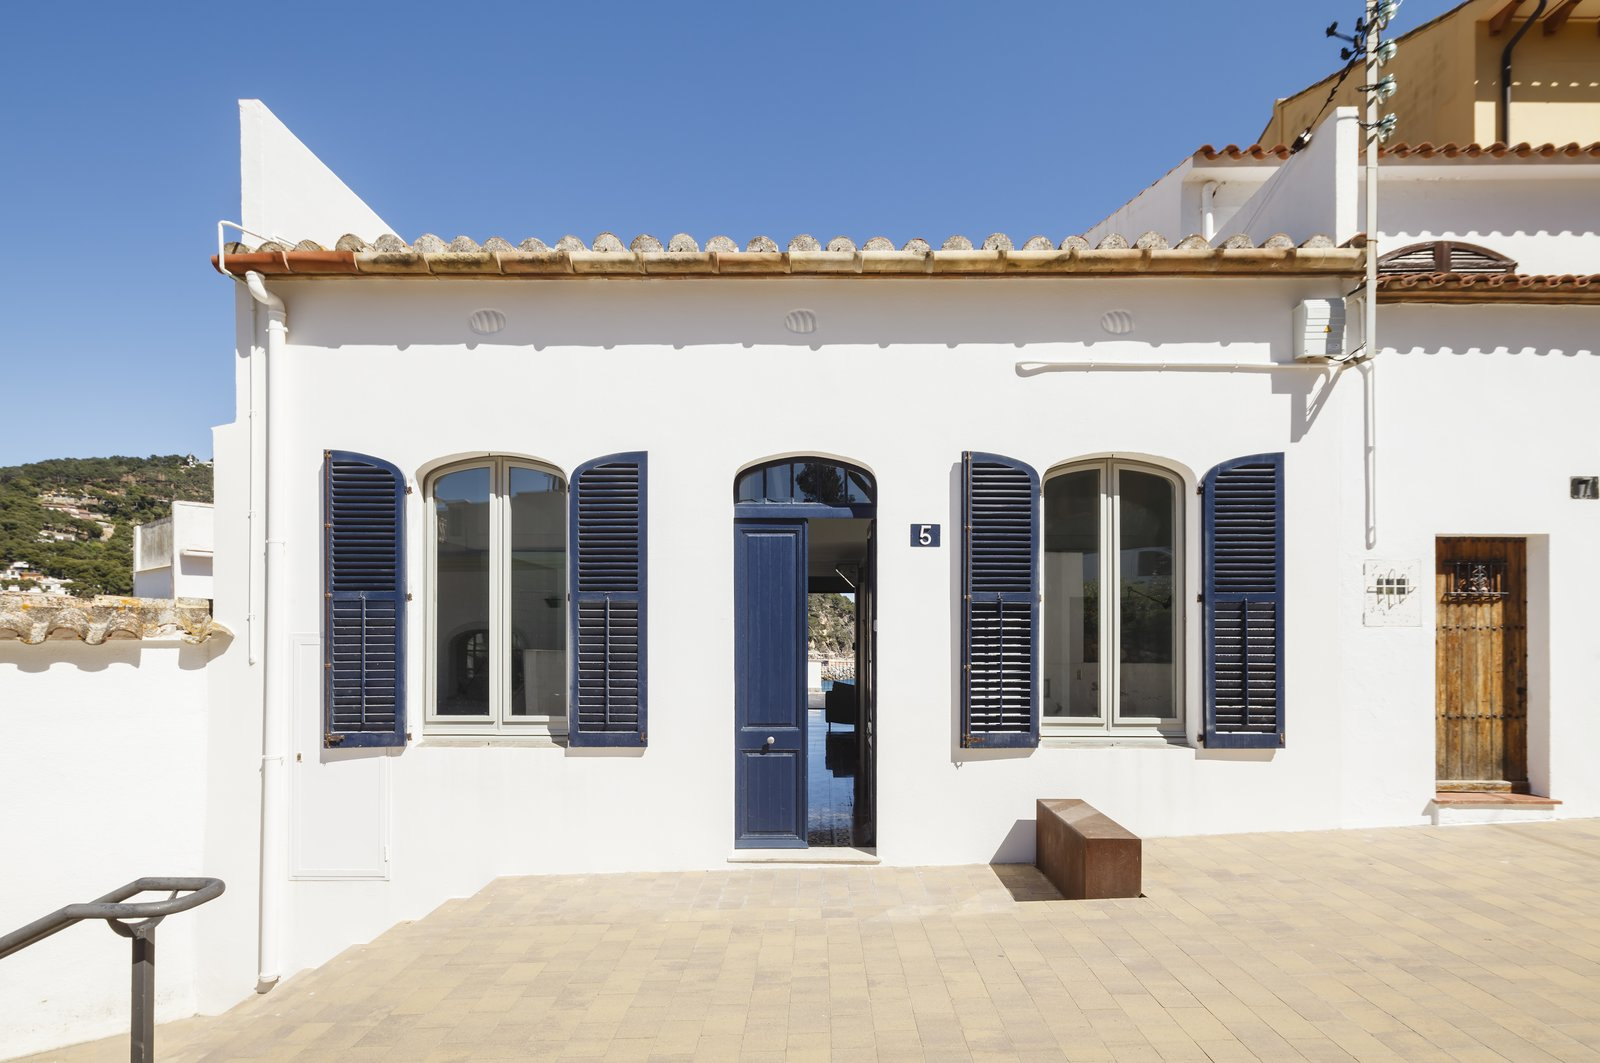 Photo 3 of 16 in A Careful Renovation Brings New Life to a Family's Heritage Home on the Spanish Coast